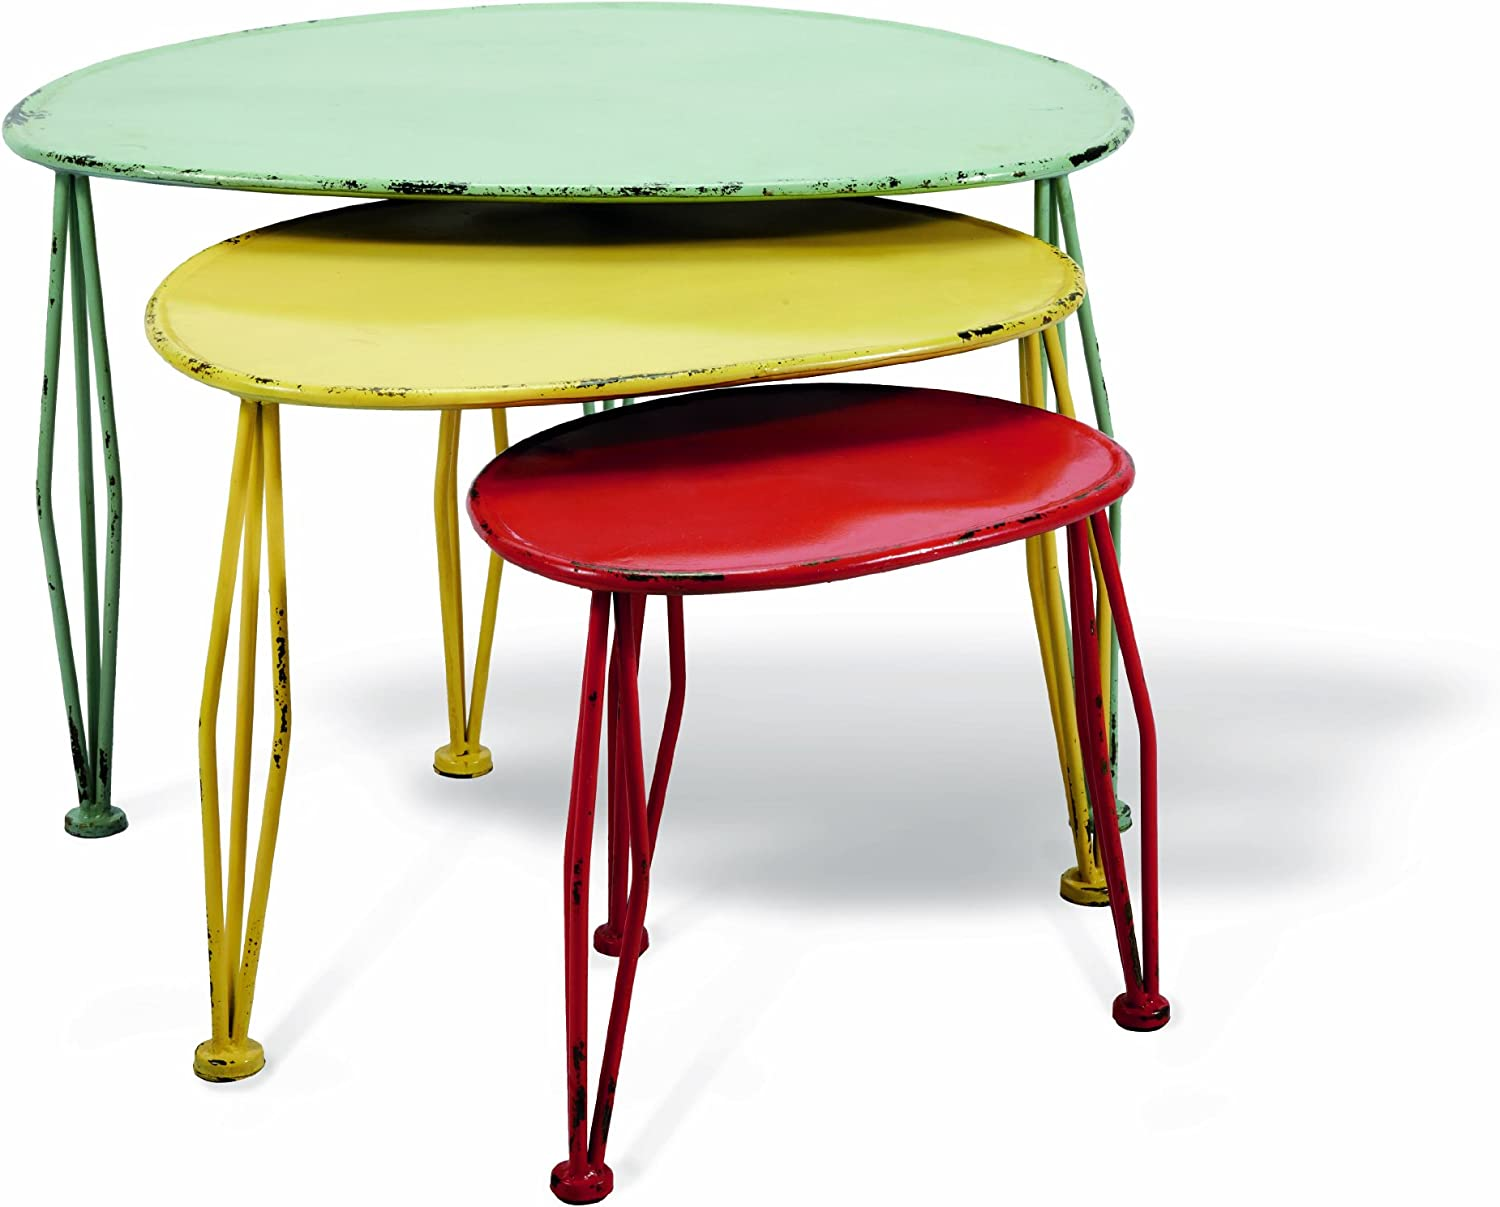 Foreside Oblong Painted Nesting Tables, Set of 3